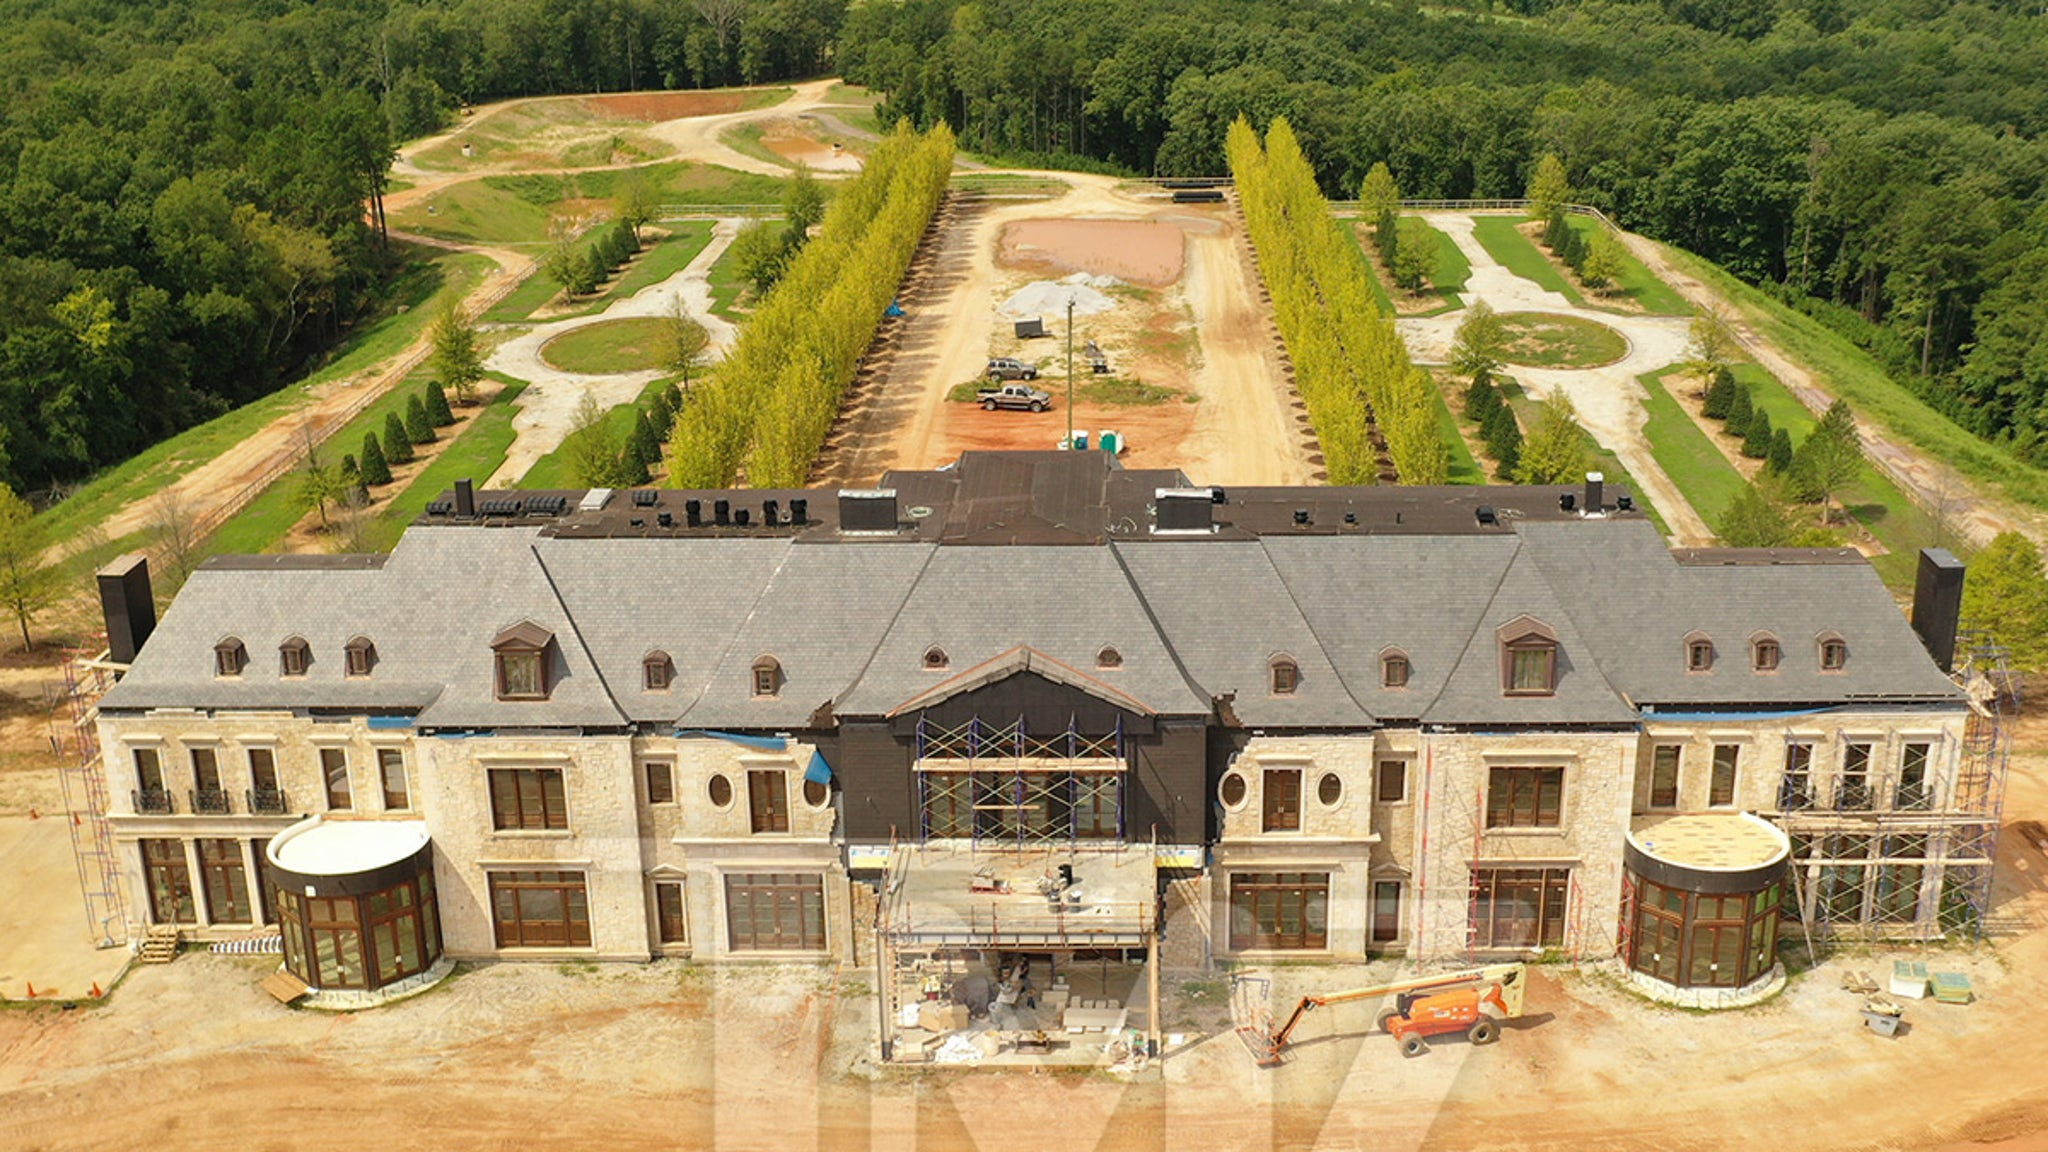 Tyler Perry's New Atlanta Estate Appears to Include a Runway thumbnail